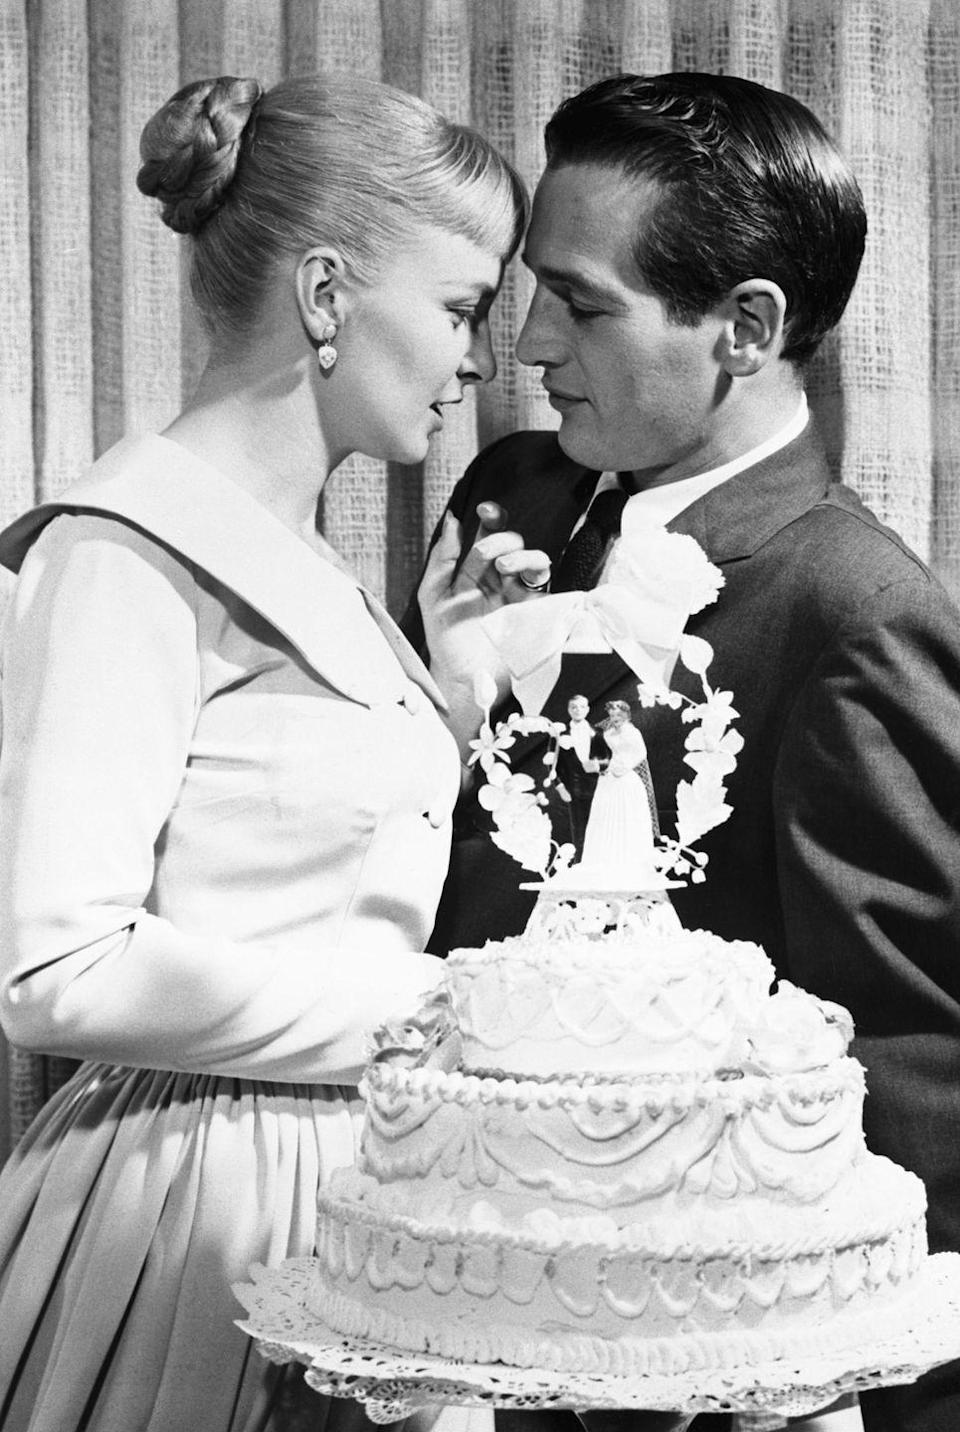 <p>Joanne Woodward and Paul Newman look enamored with one another on their wedding day. The couple married in a simple ceremony in Las Vegas. They settled in Connecticut, where they remained married until Paul's death in 2008. </p>